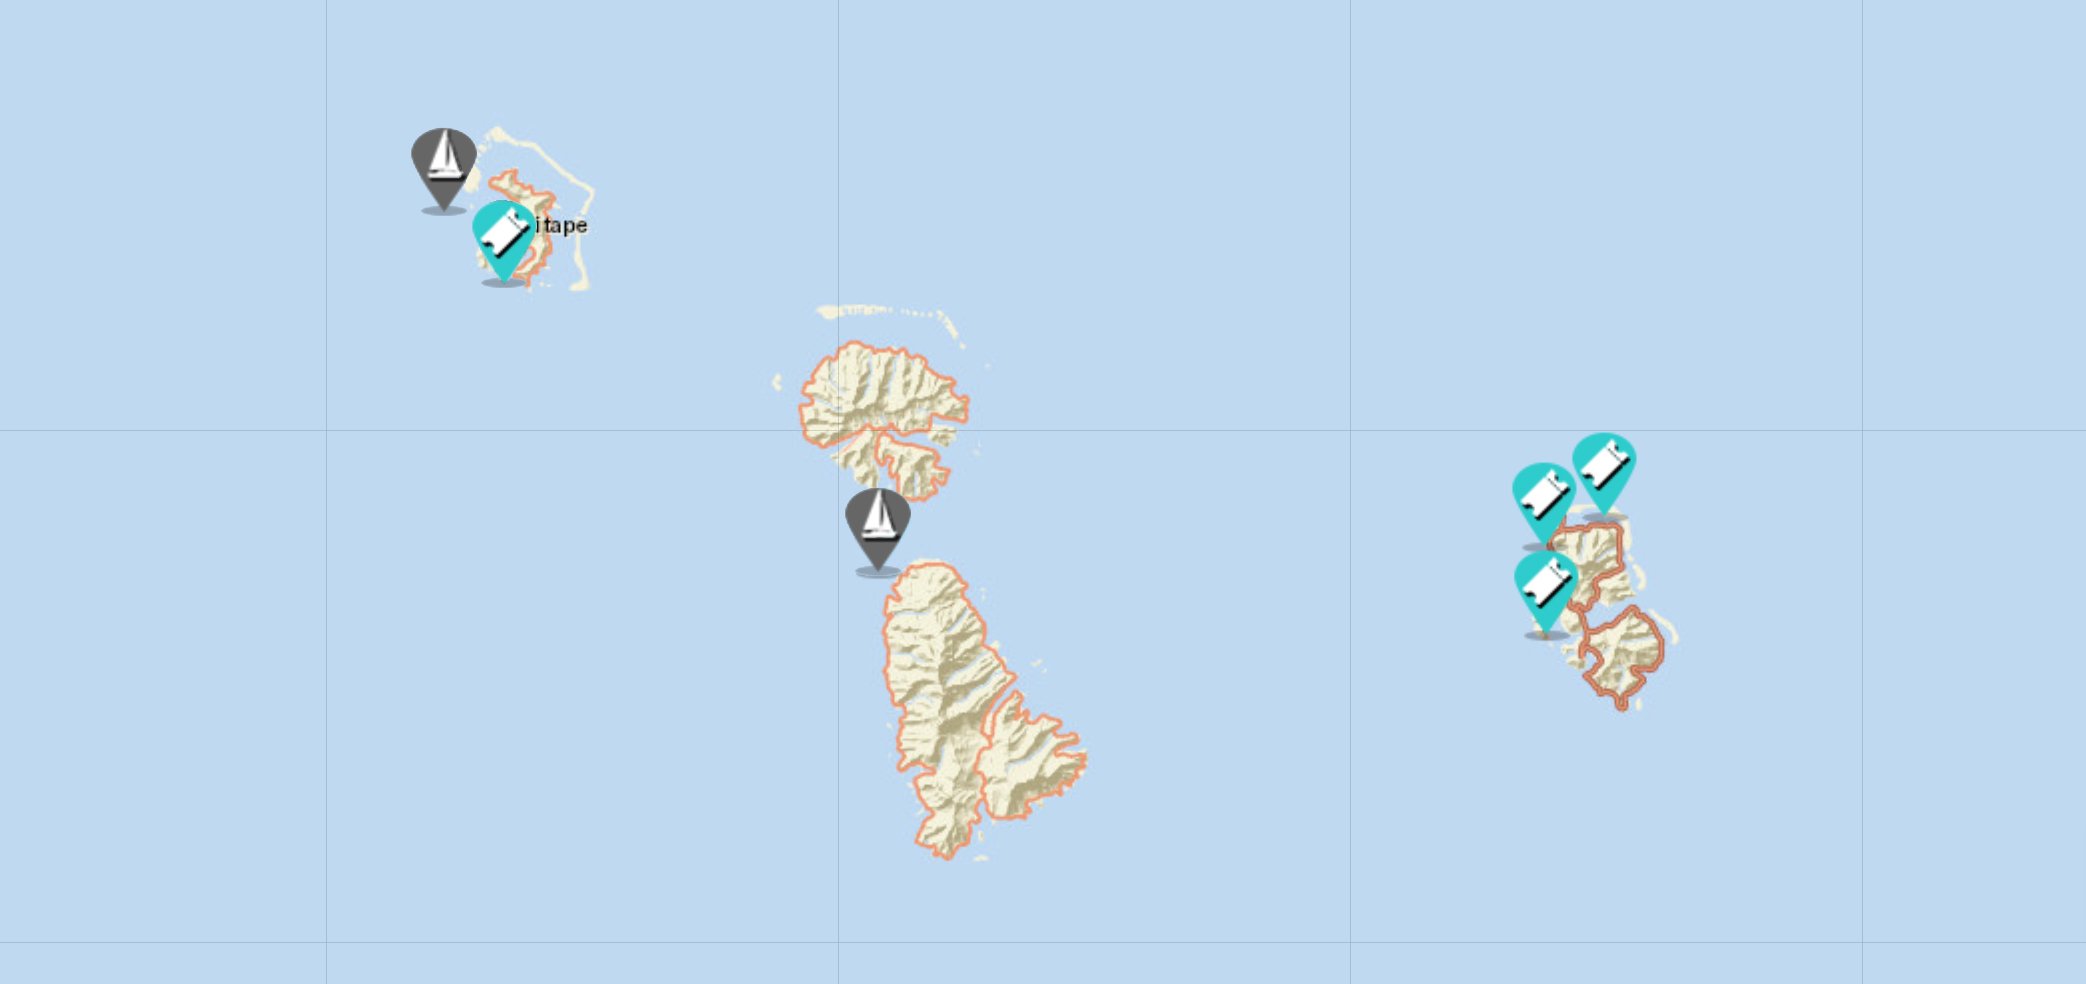 sailing map of bora bora